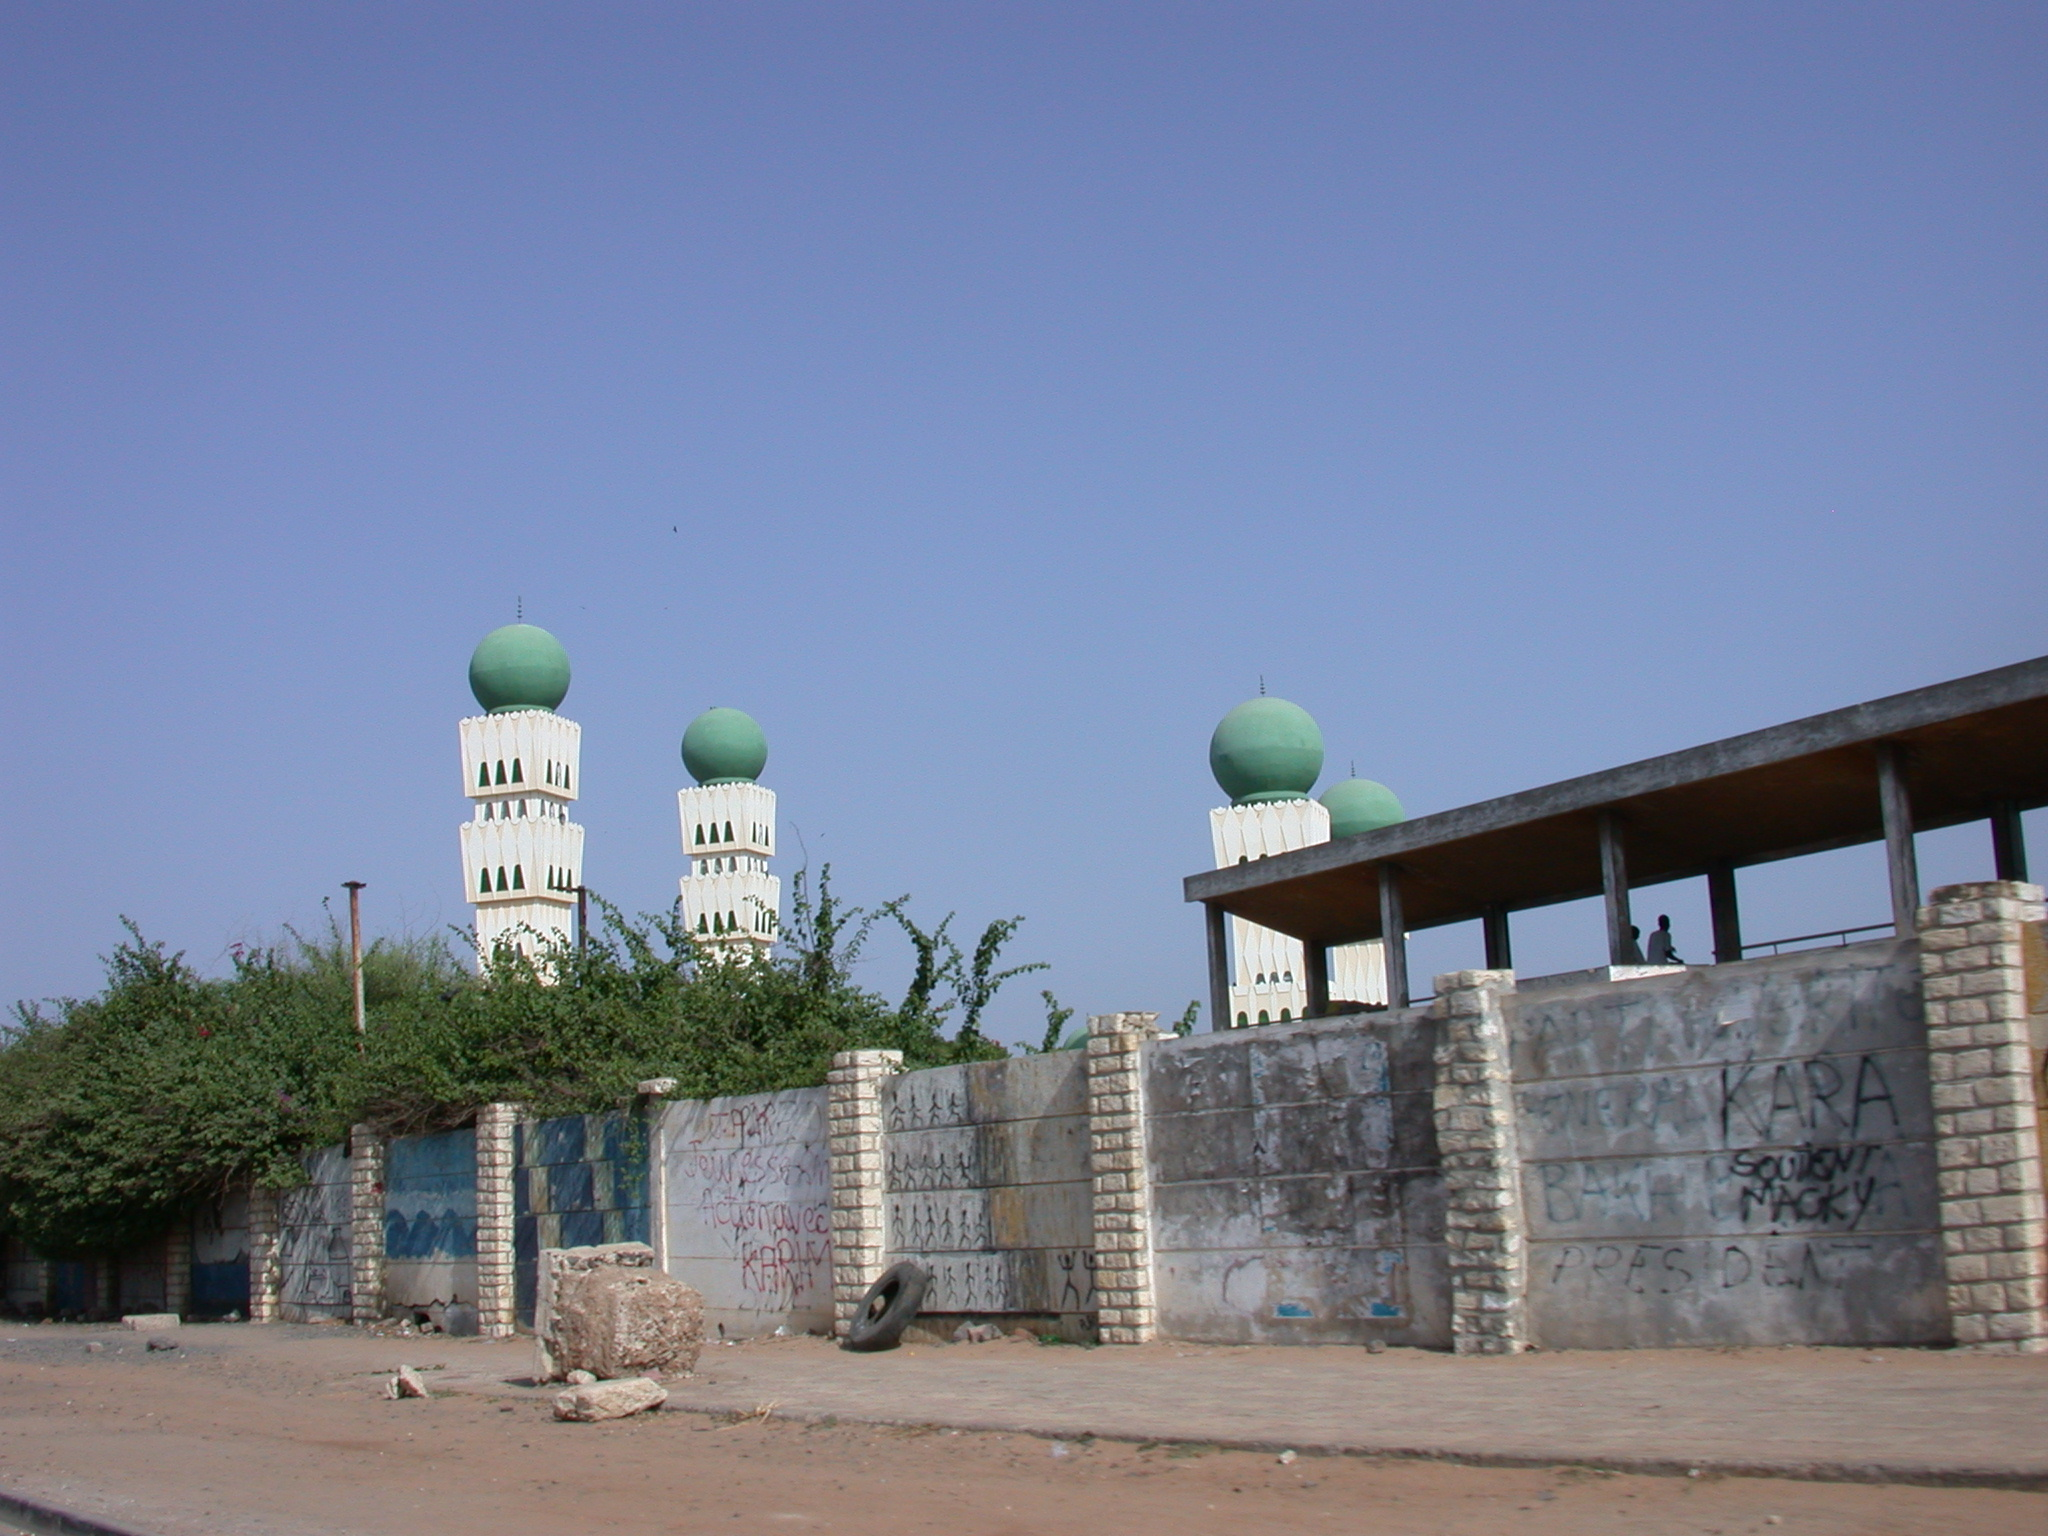 Peul Mosque in Dakar, Senegal